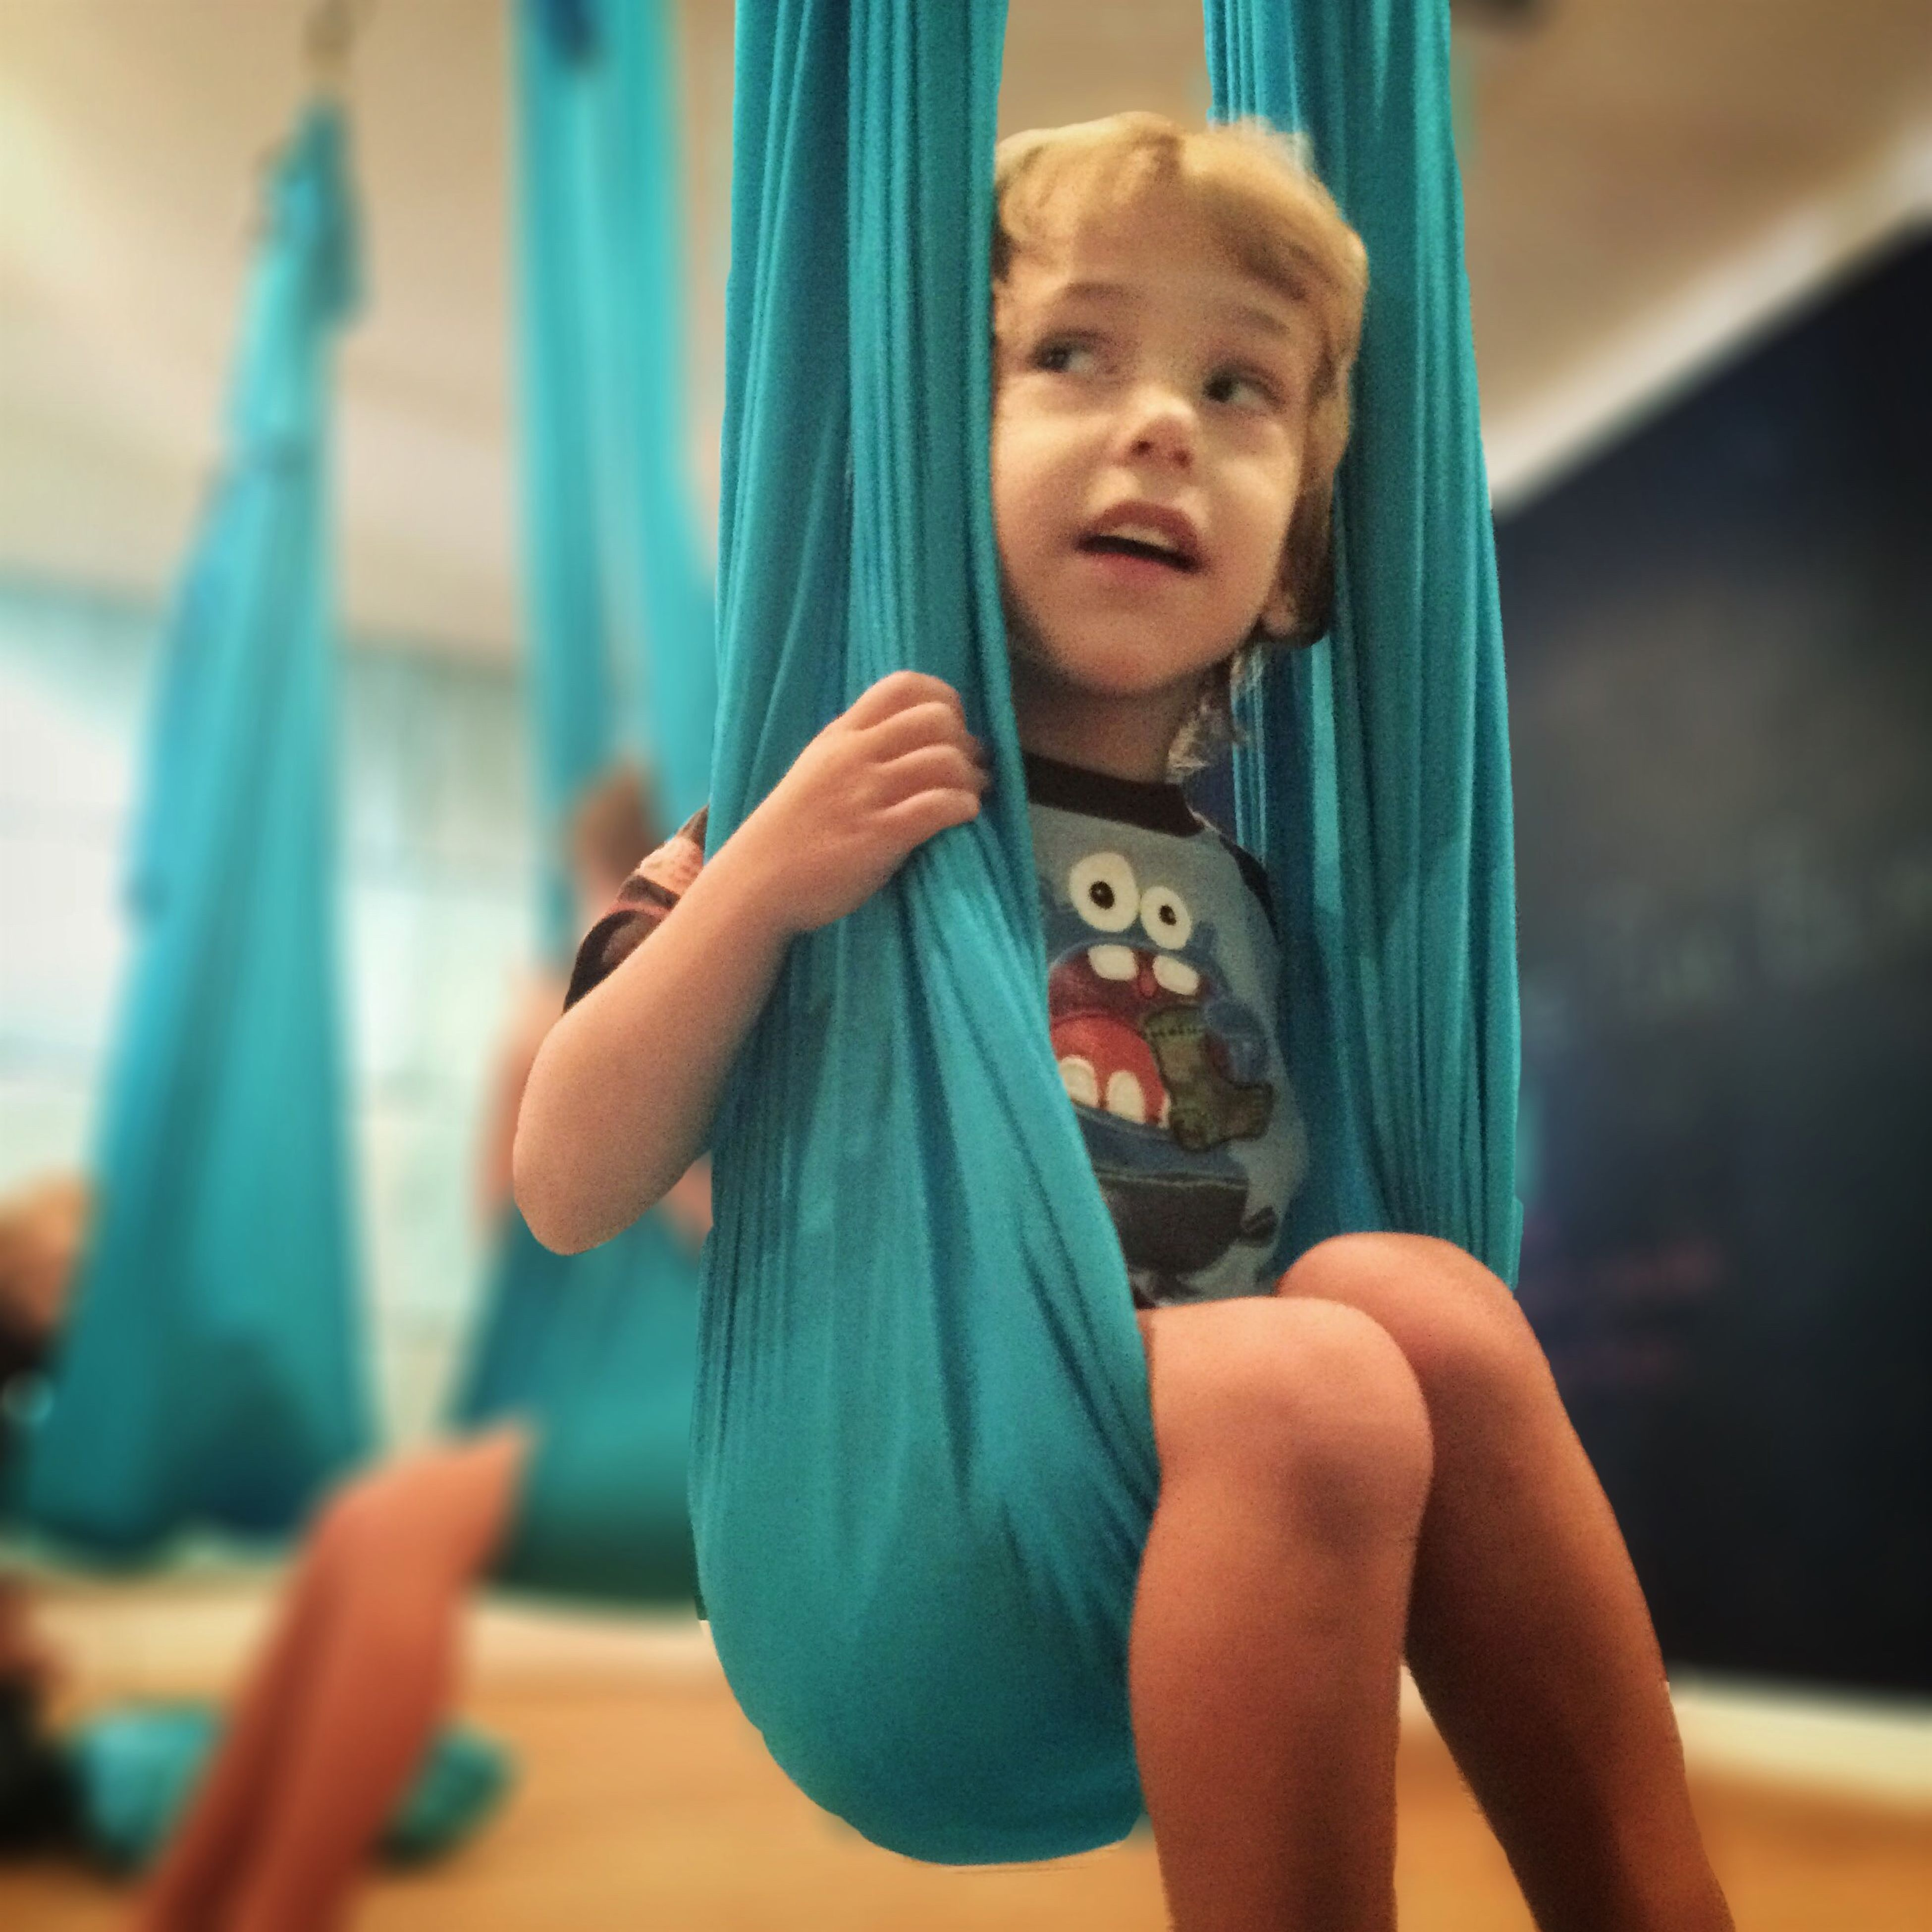 Aerial yoga time. IPhoneography Relaxing Hanging Out EyeEm Best Shots Enjoying Life Taking Photos Yoga Kids Austin Texas